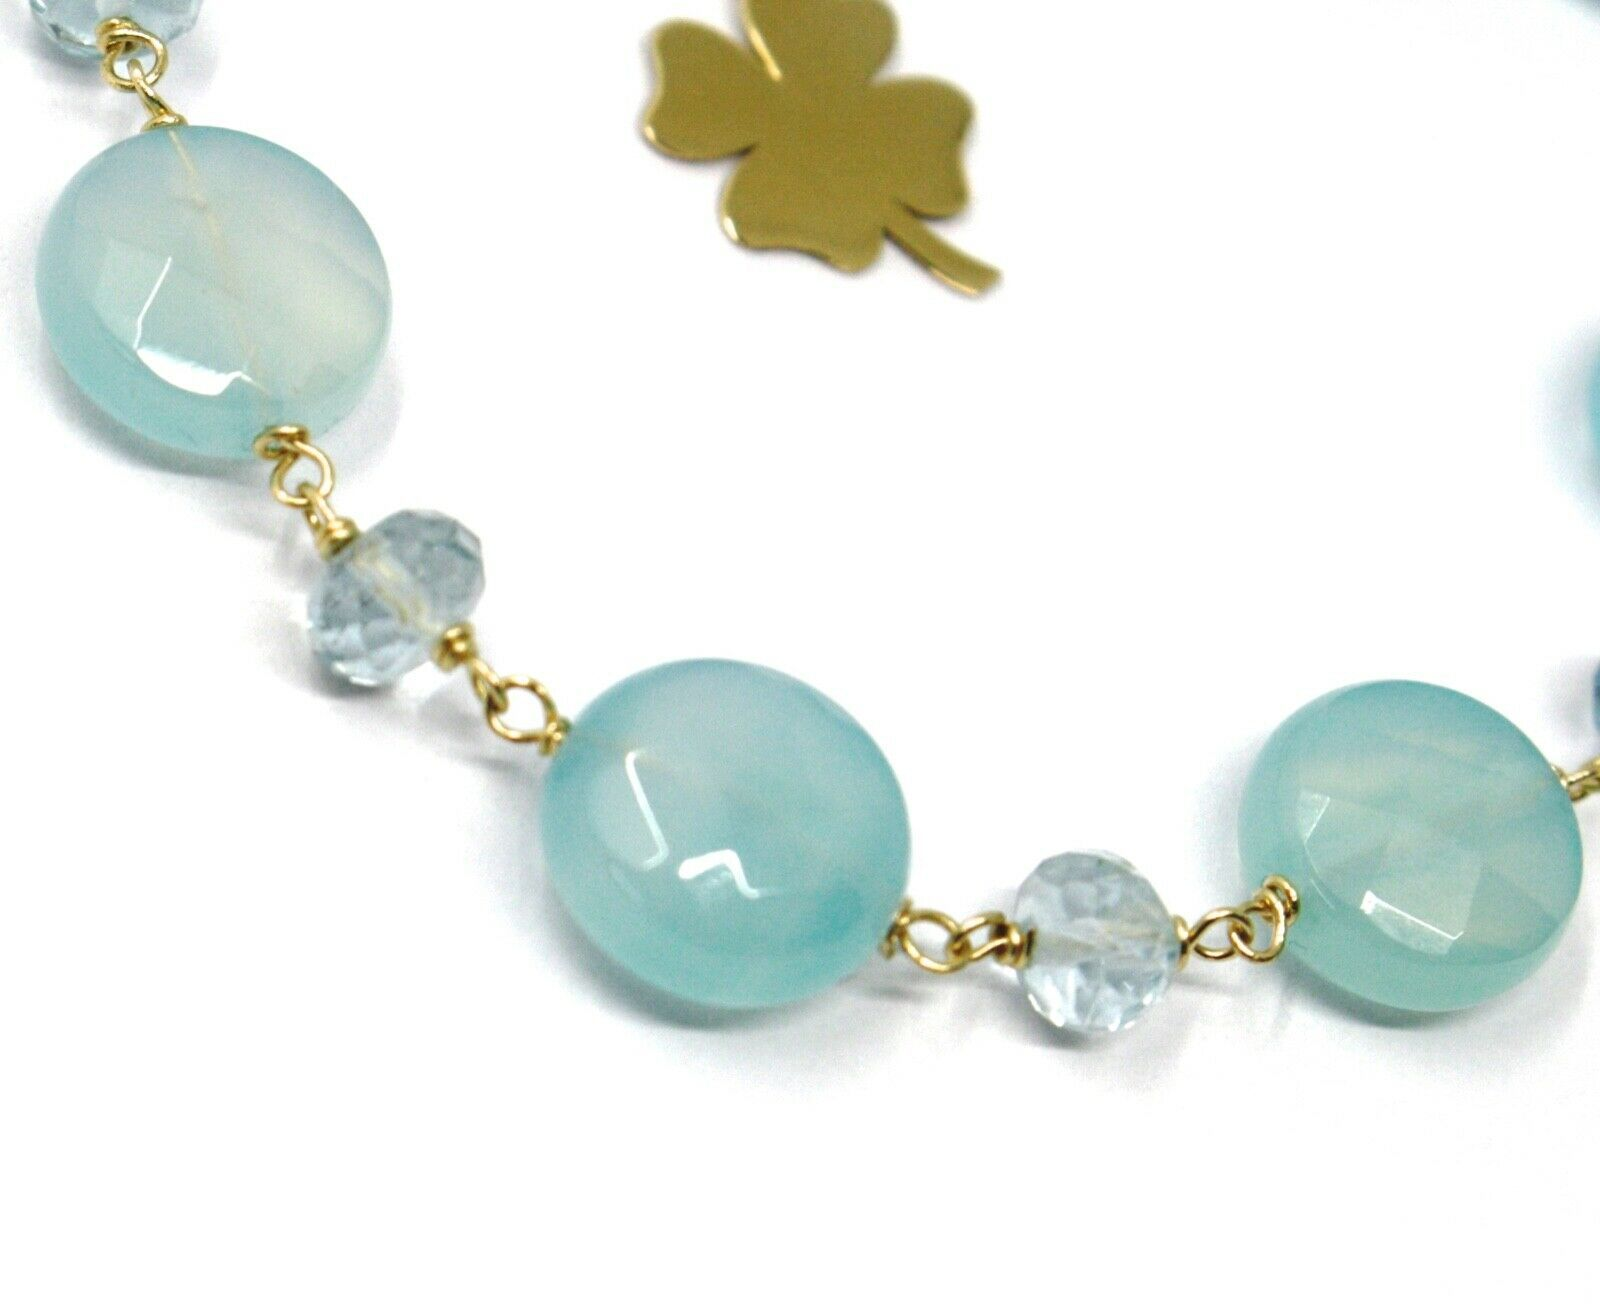 18K YELLOW GOLD BRACELET OVAL FACETED AQUAMARINE AGATE, FOUR LEAF CLOVER PENDANT